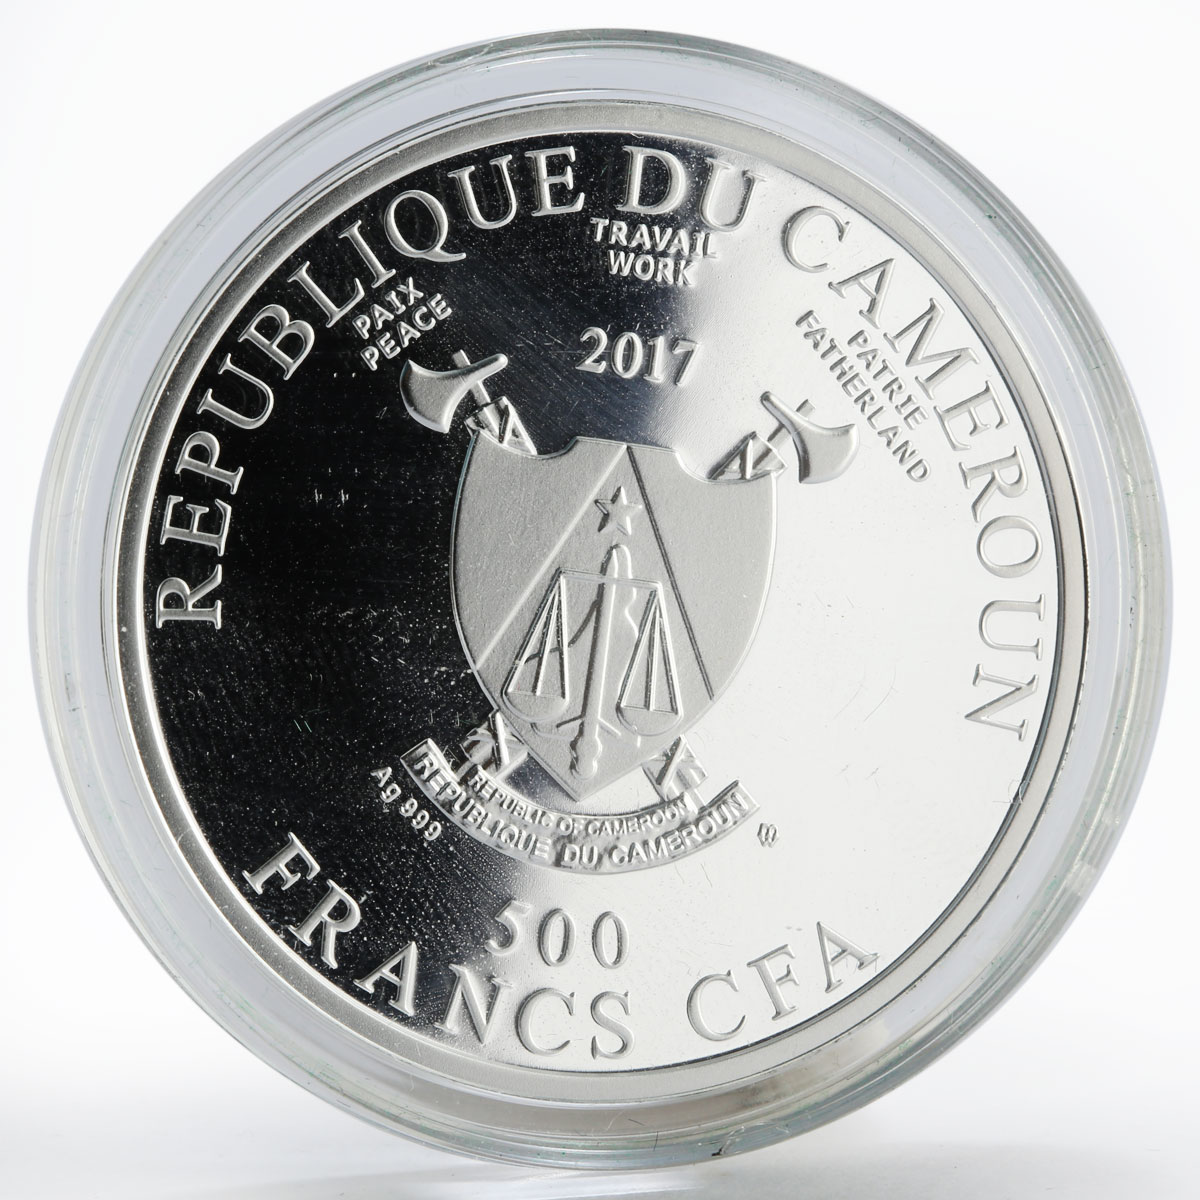 Cameroon 500 francs Schoolar Rembrandt art colored proof silver coin 2017